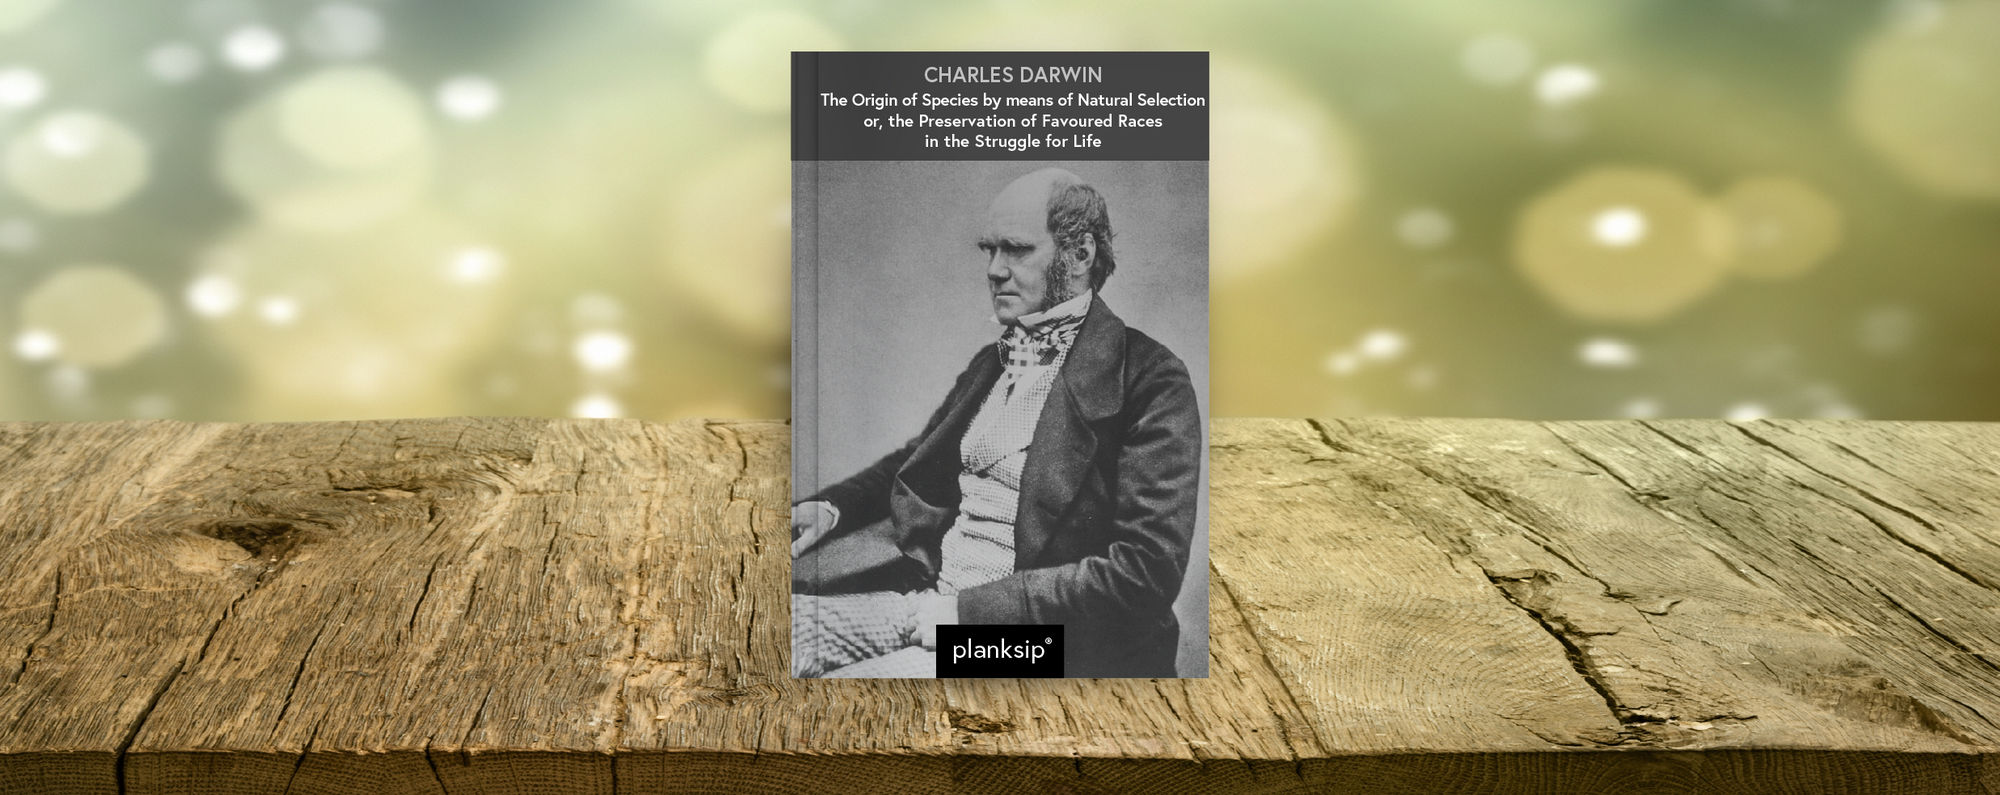 The Origin of Species by means of Natural Selection by Charles Darwin (1809-1882). Published by planksip®